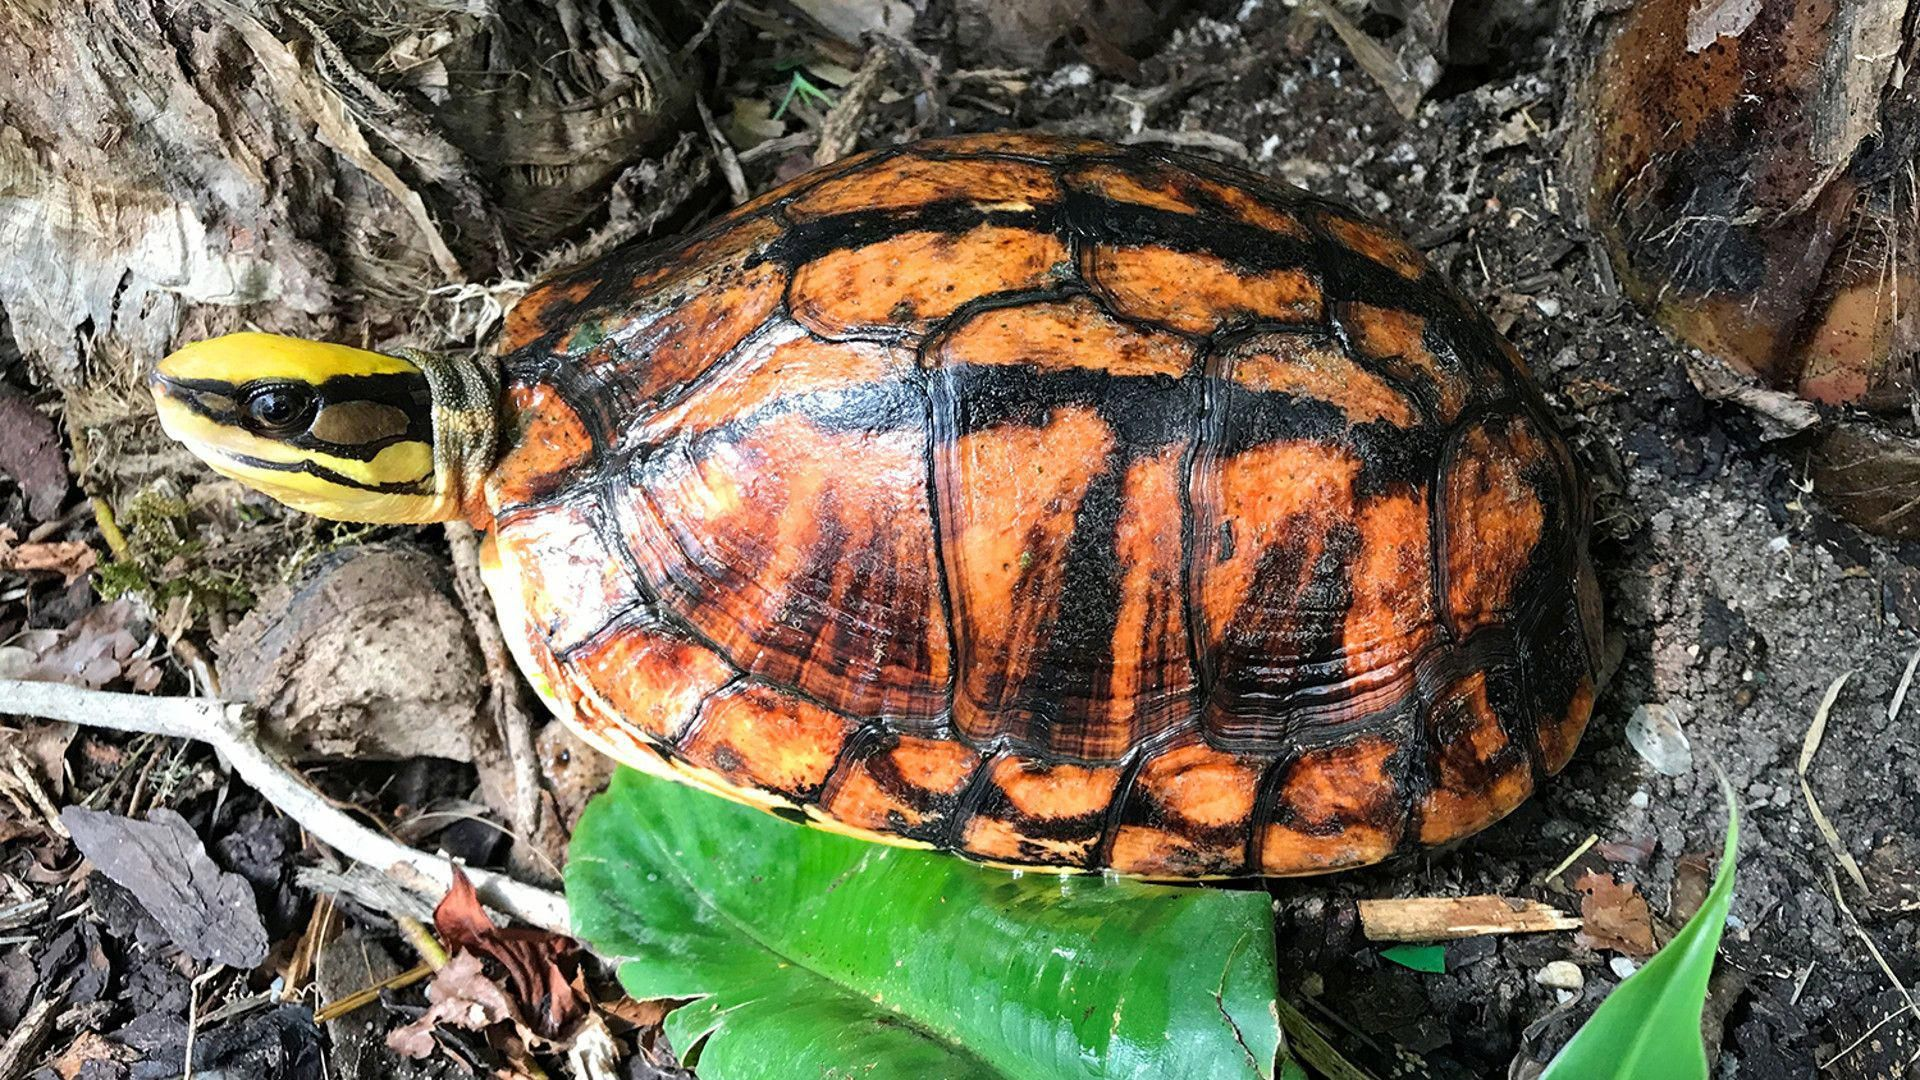 The Turtle Extinction Crisis Nearly Half Of All Freshwater